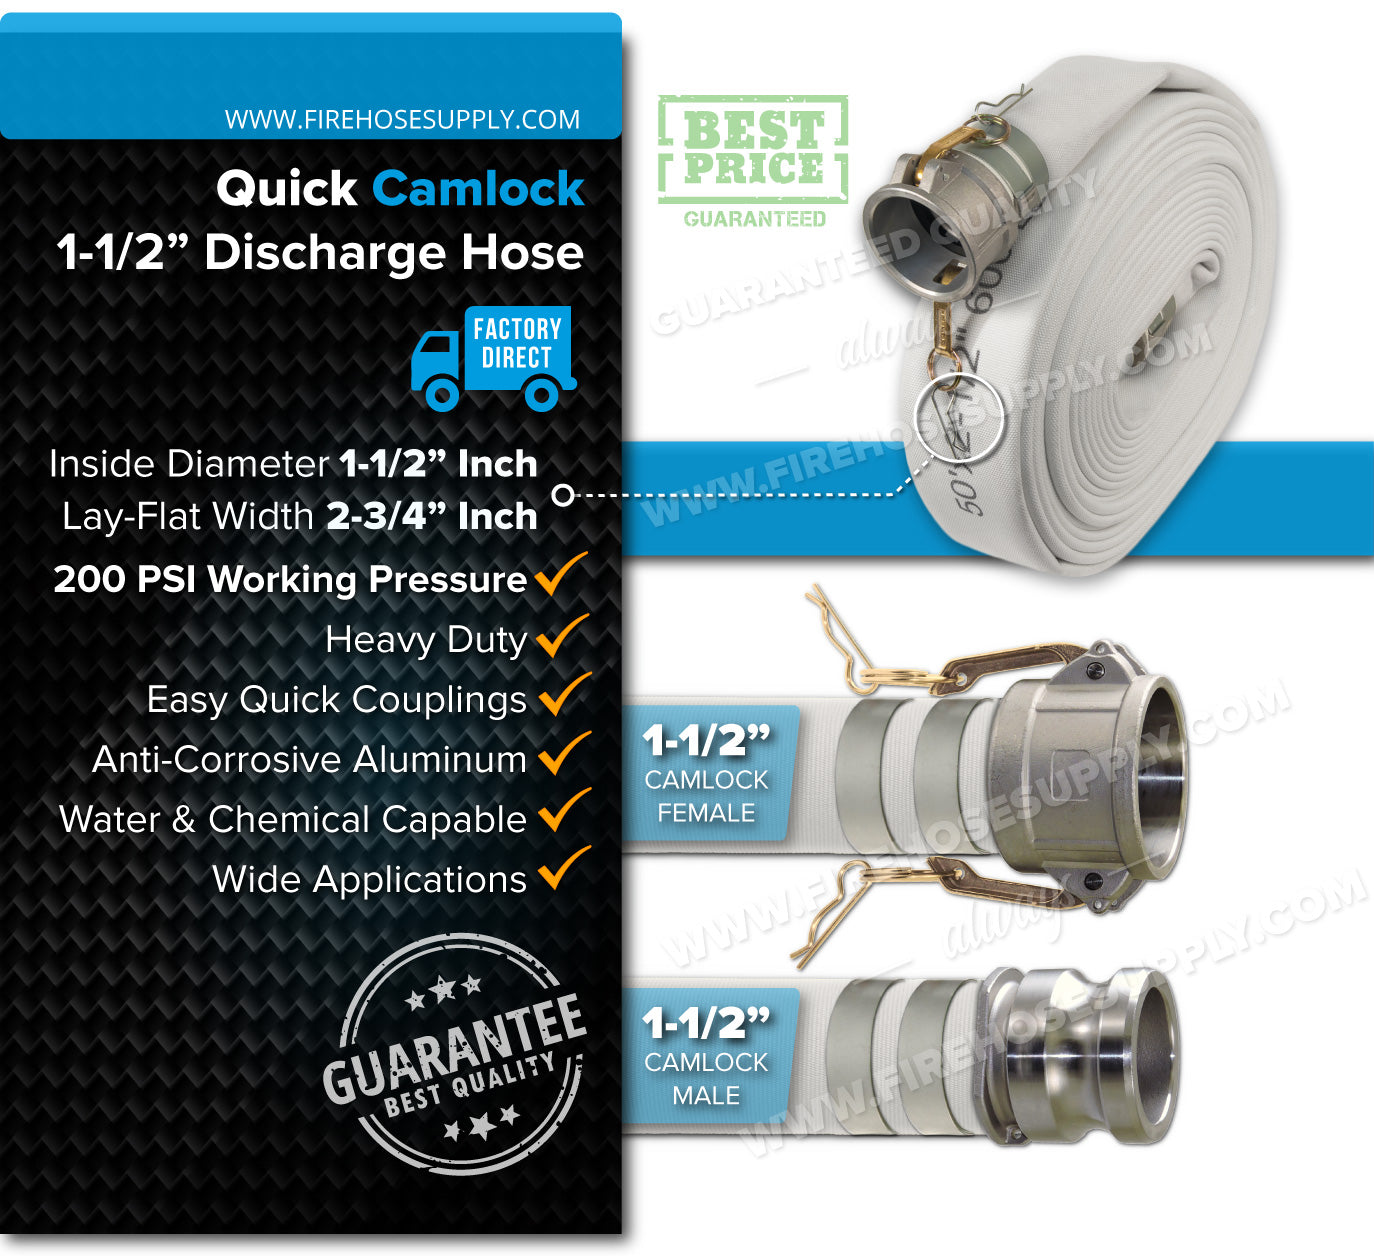 What is 1-1-2 Double Jacket Camlock Hose Overview